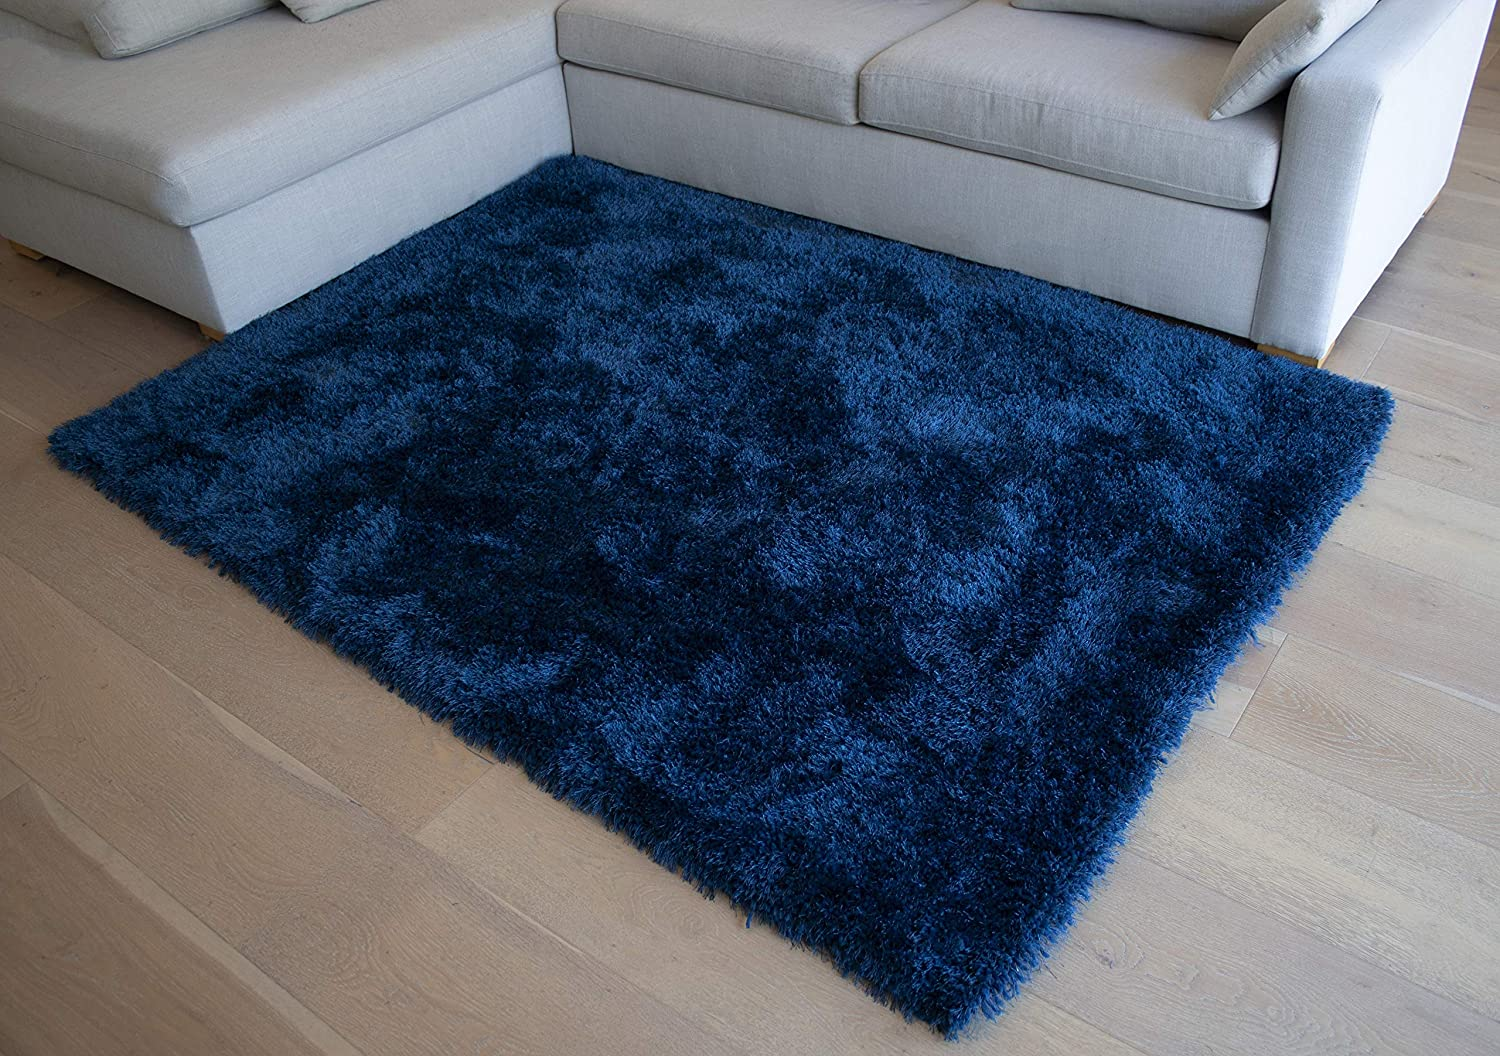 Navy Blue Dark Blue Color Area Rug Carpet Rug 8 X10 Feet Solo Color Shag Shaggy Collection Solid Plush Indoor Bedroom Living Room Modern Contemporary Decorative Designer Hand Woven Kitchen Dining